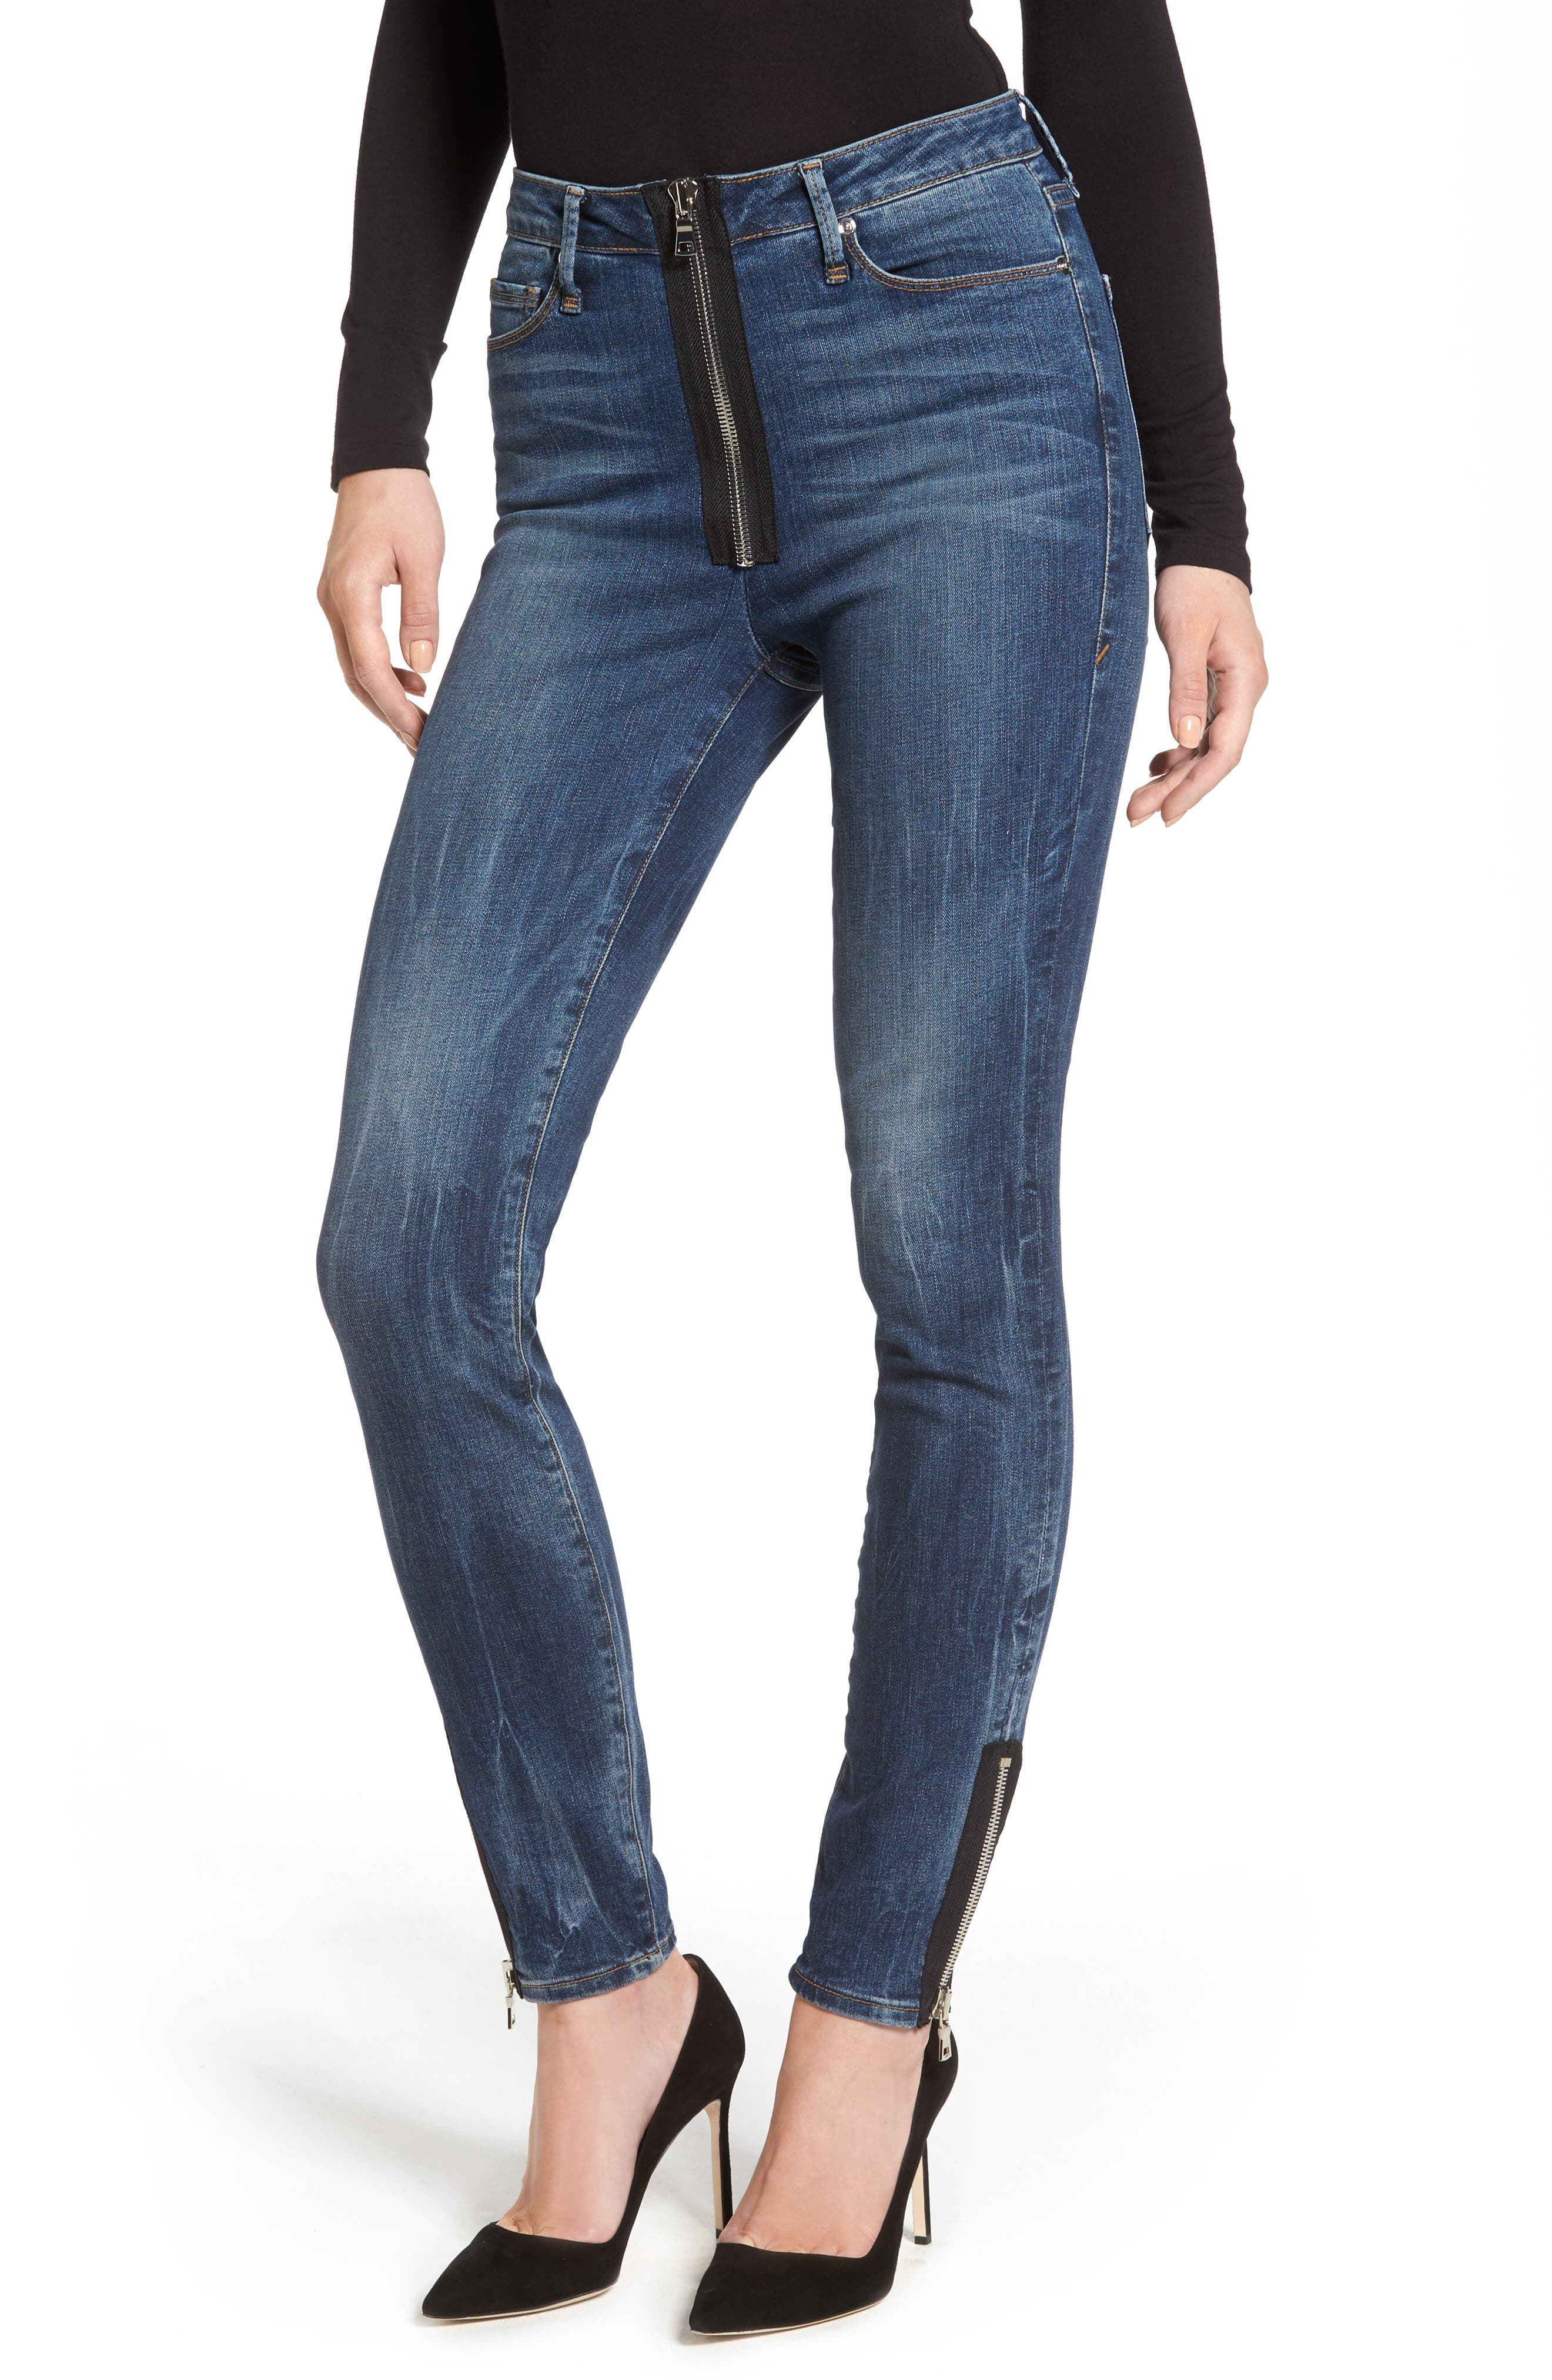 Main Image - Good American Good Waist High Rise Ankle Jeans (Blue 076) (Regular & Plus Size)